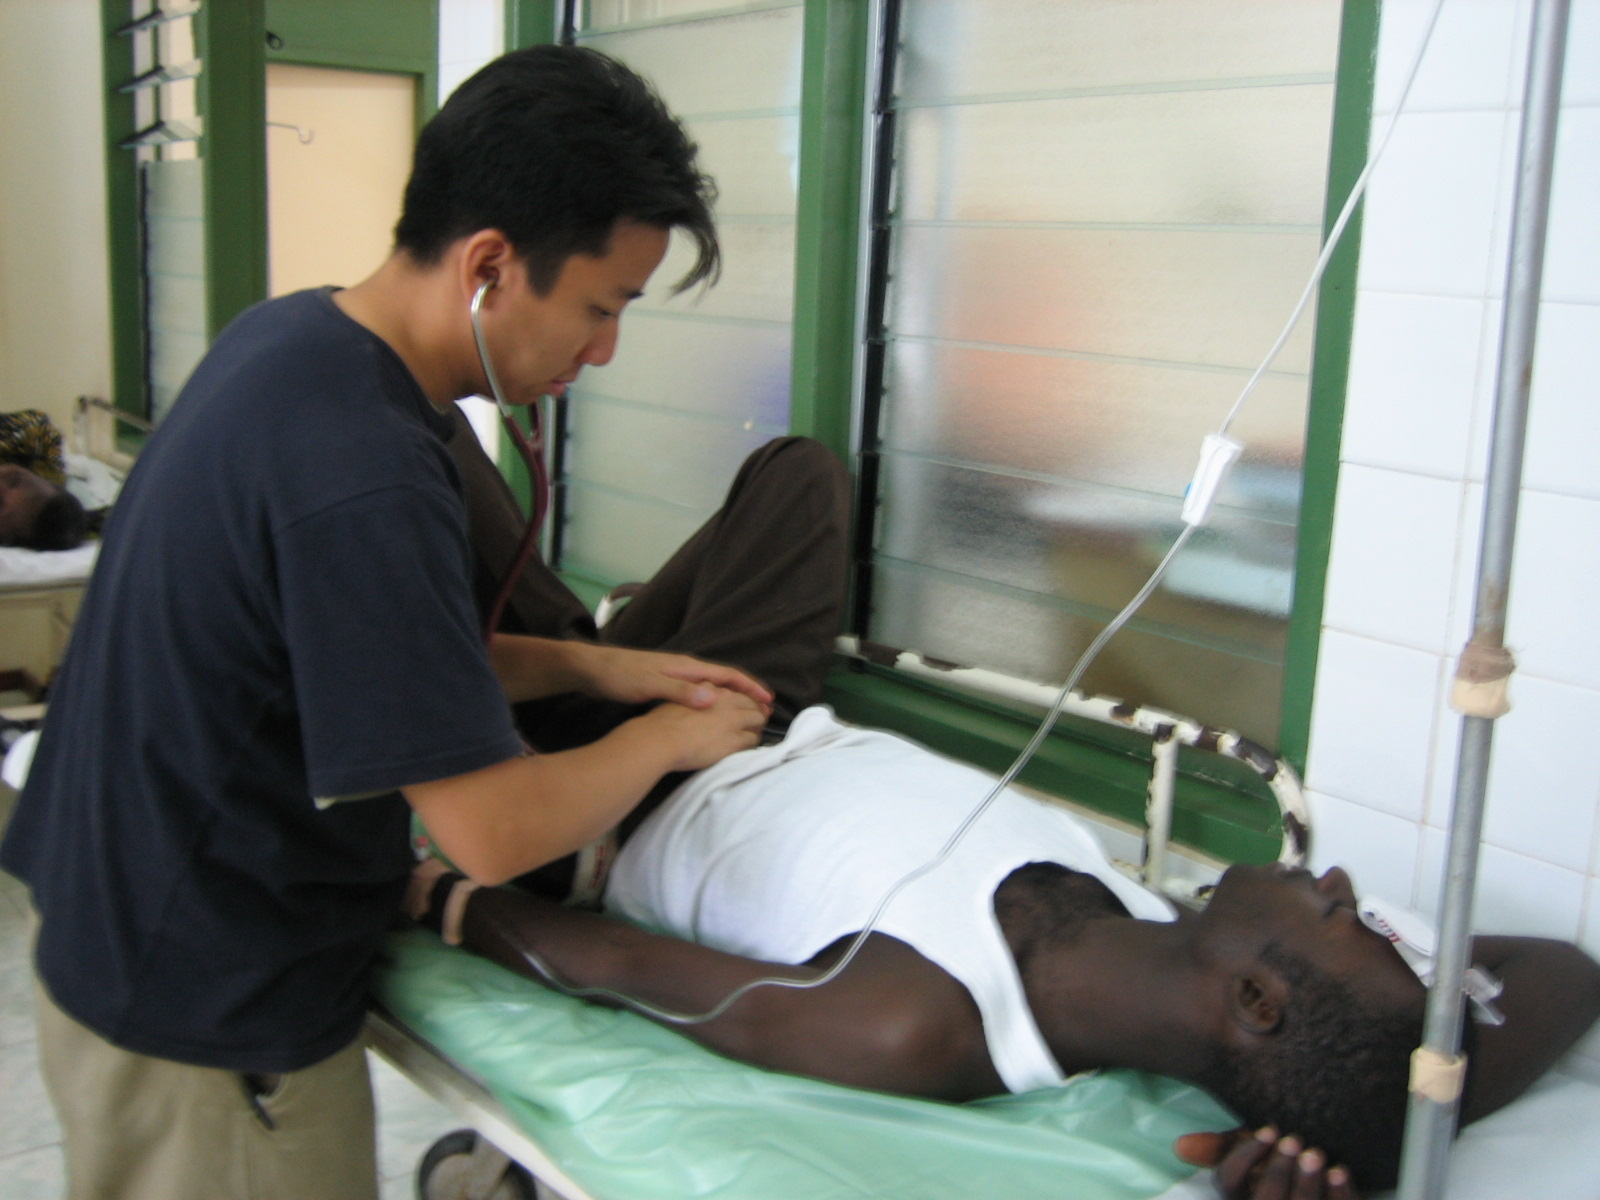 Dr. Richard Kwun (Mount Sinai, NY) treating a patient with an incarcerated hernia as an EAUMF volunteer in 2005